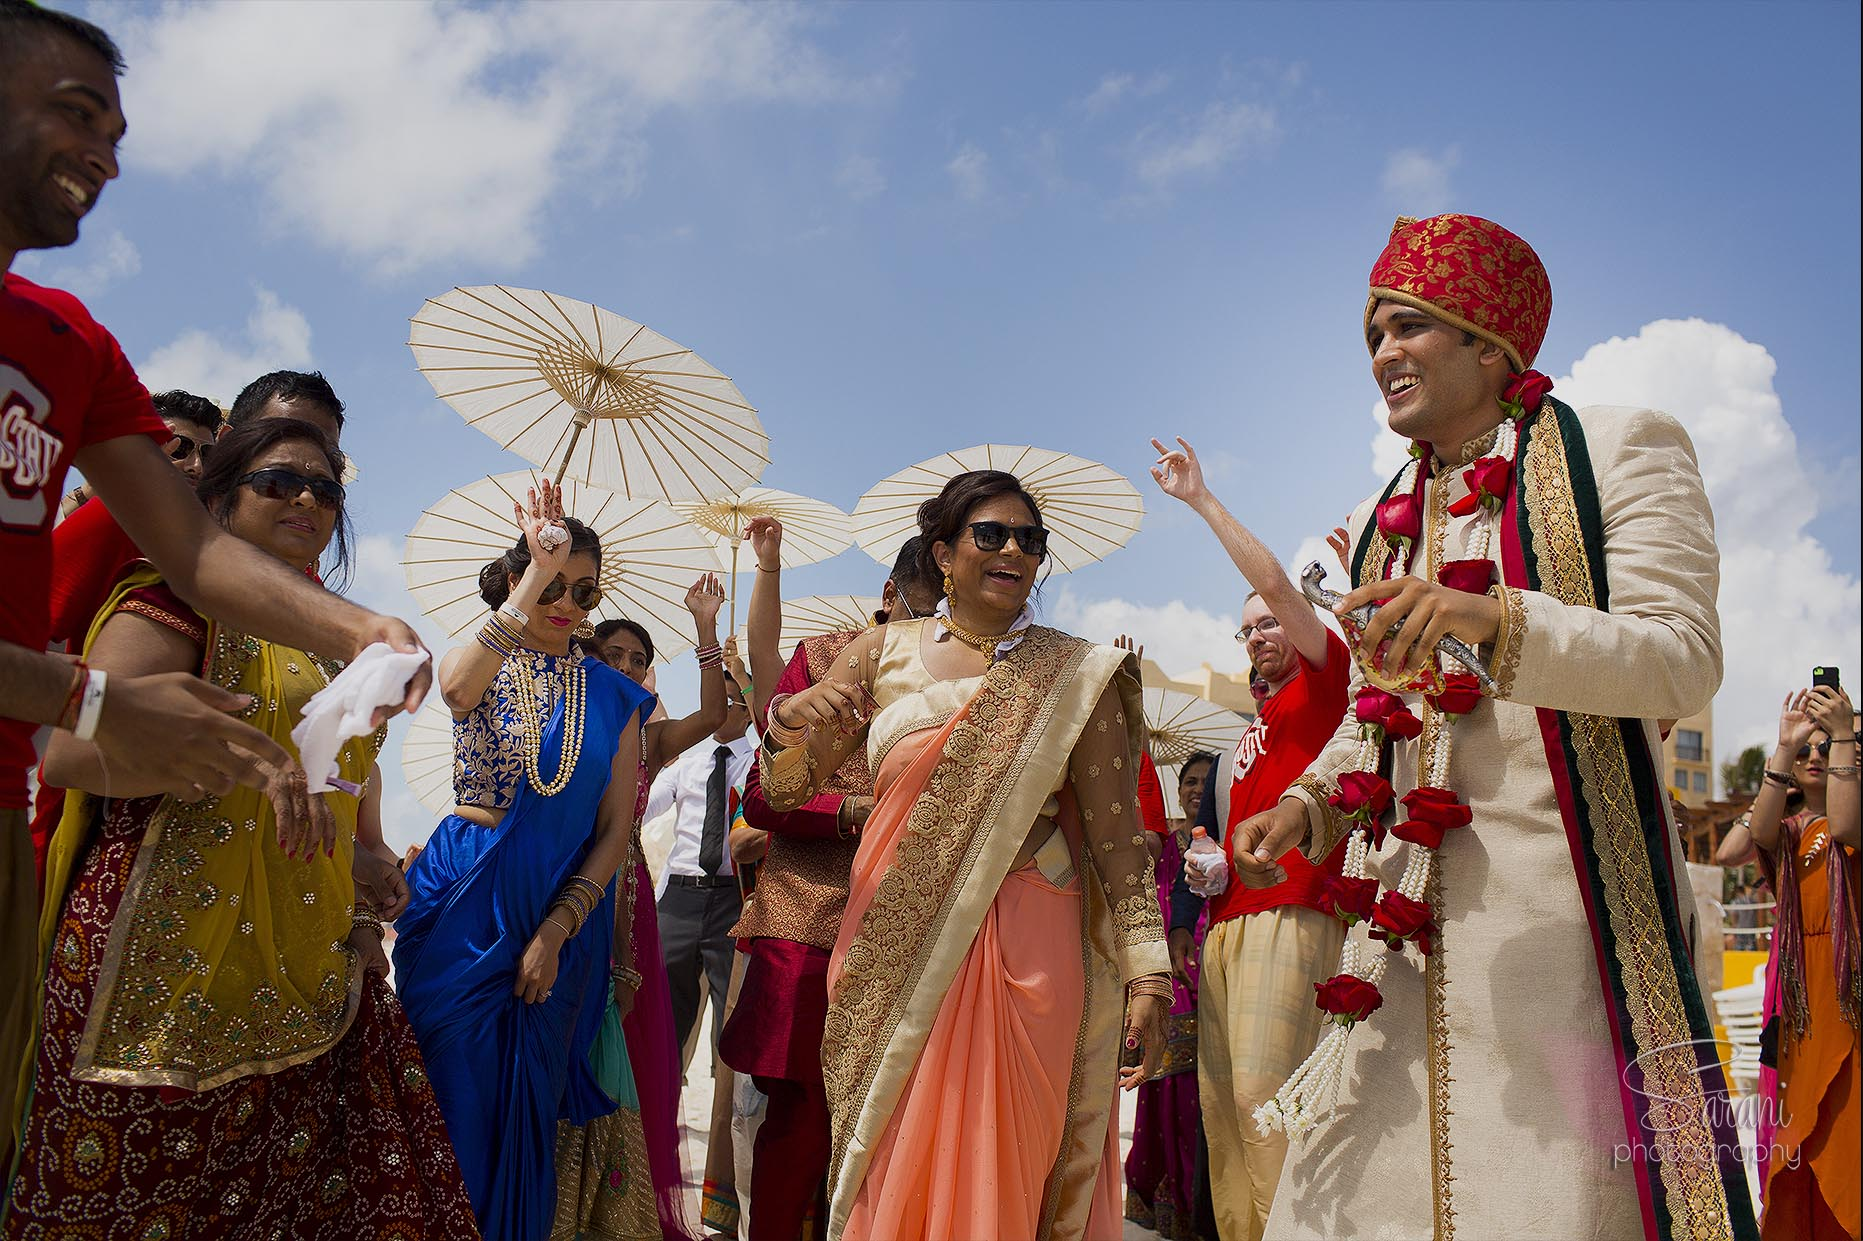 mexico-weddings-krishna-mihir-11.jpg